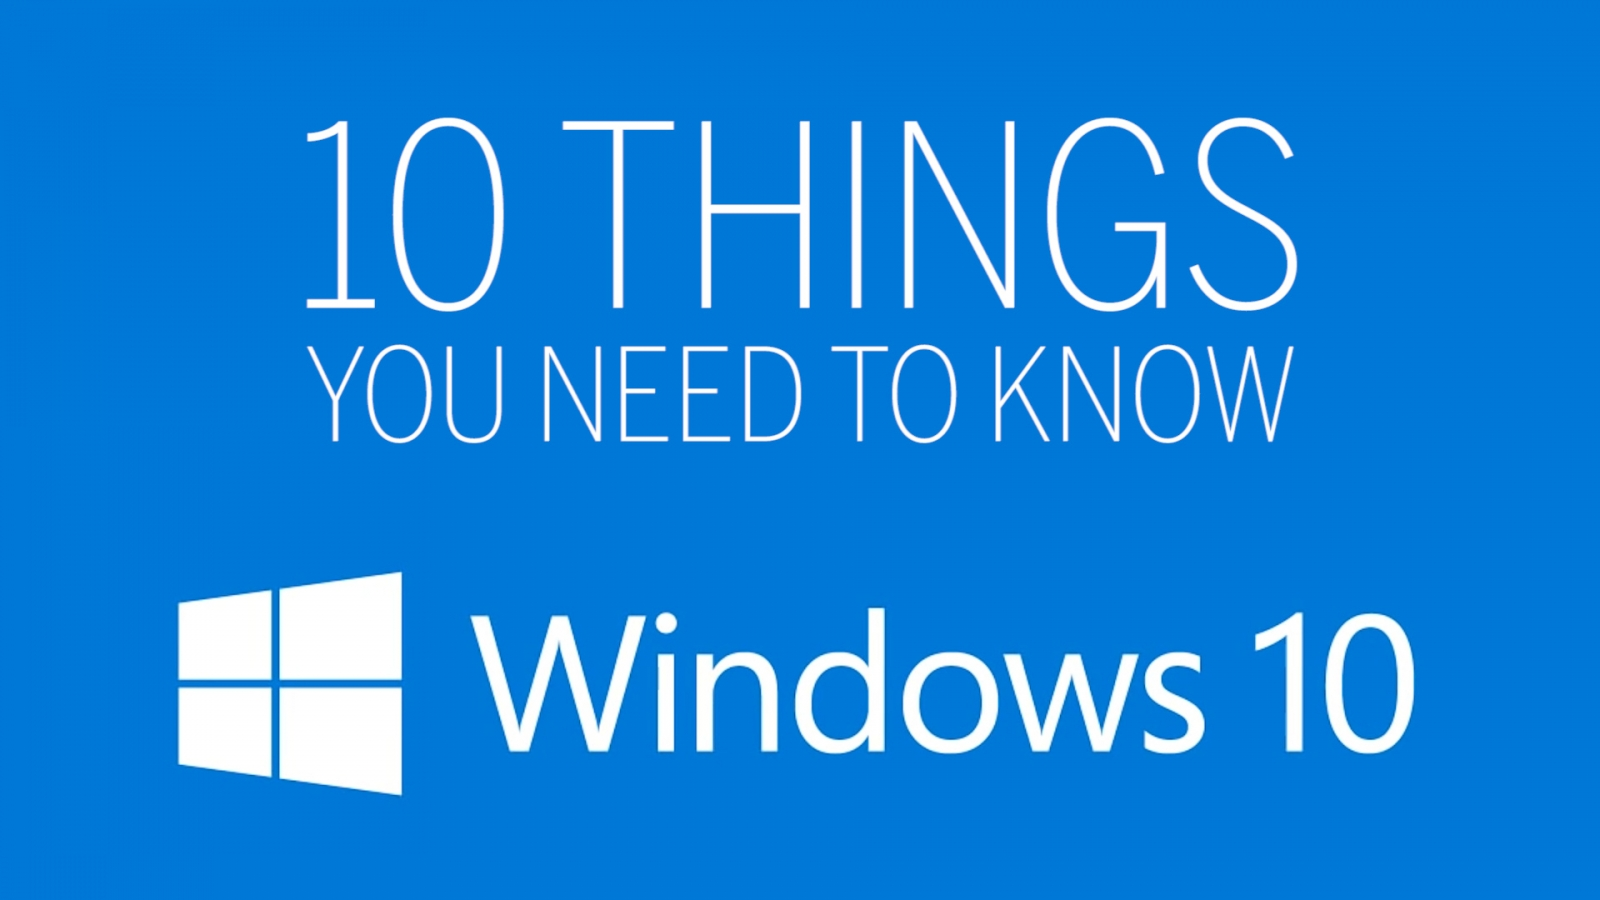 10 things to know about Windows 10